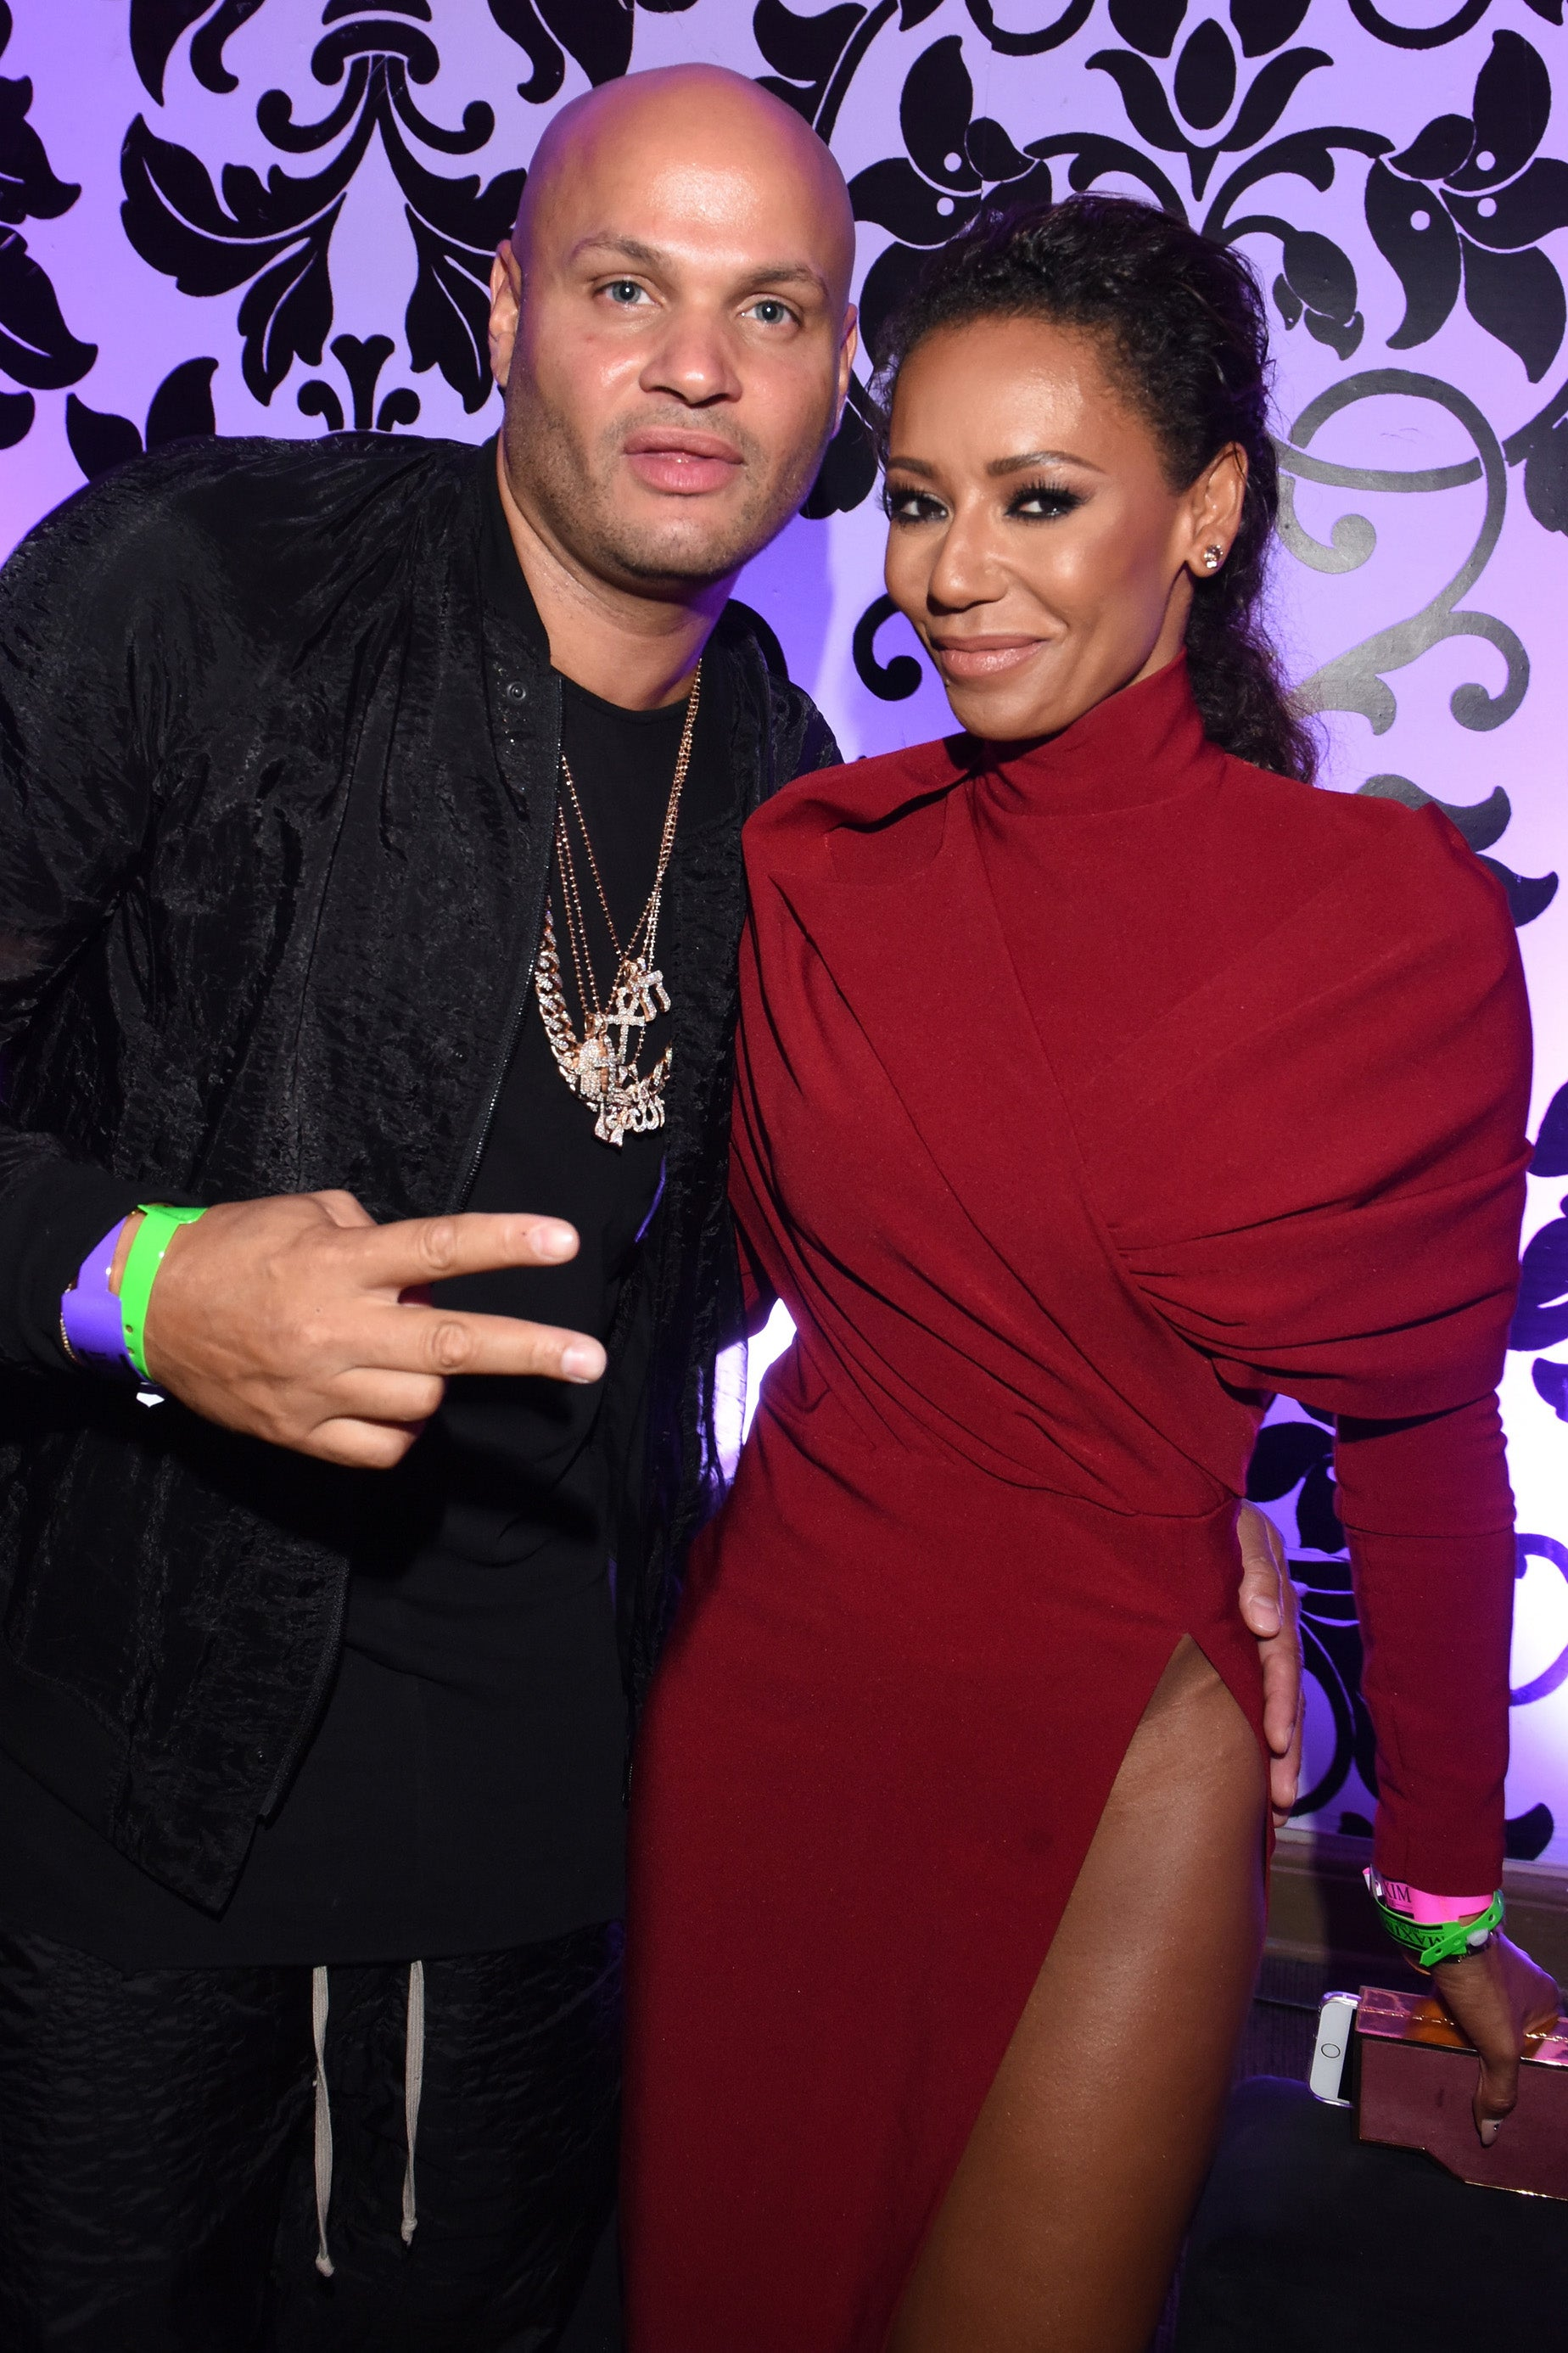 Inside Mel B's Restraining Order Against Ex Stephen Belafonte: The Biggest Bombshells